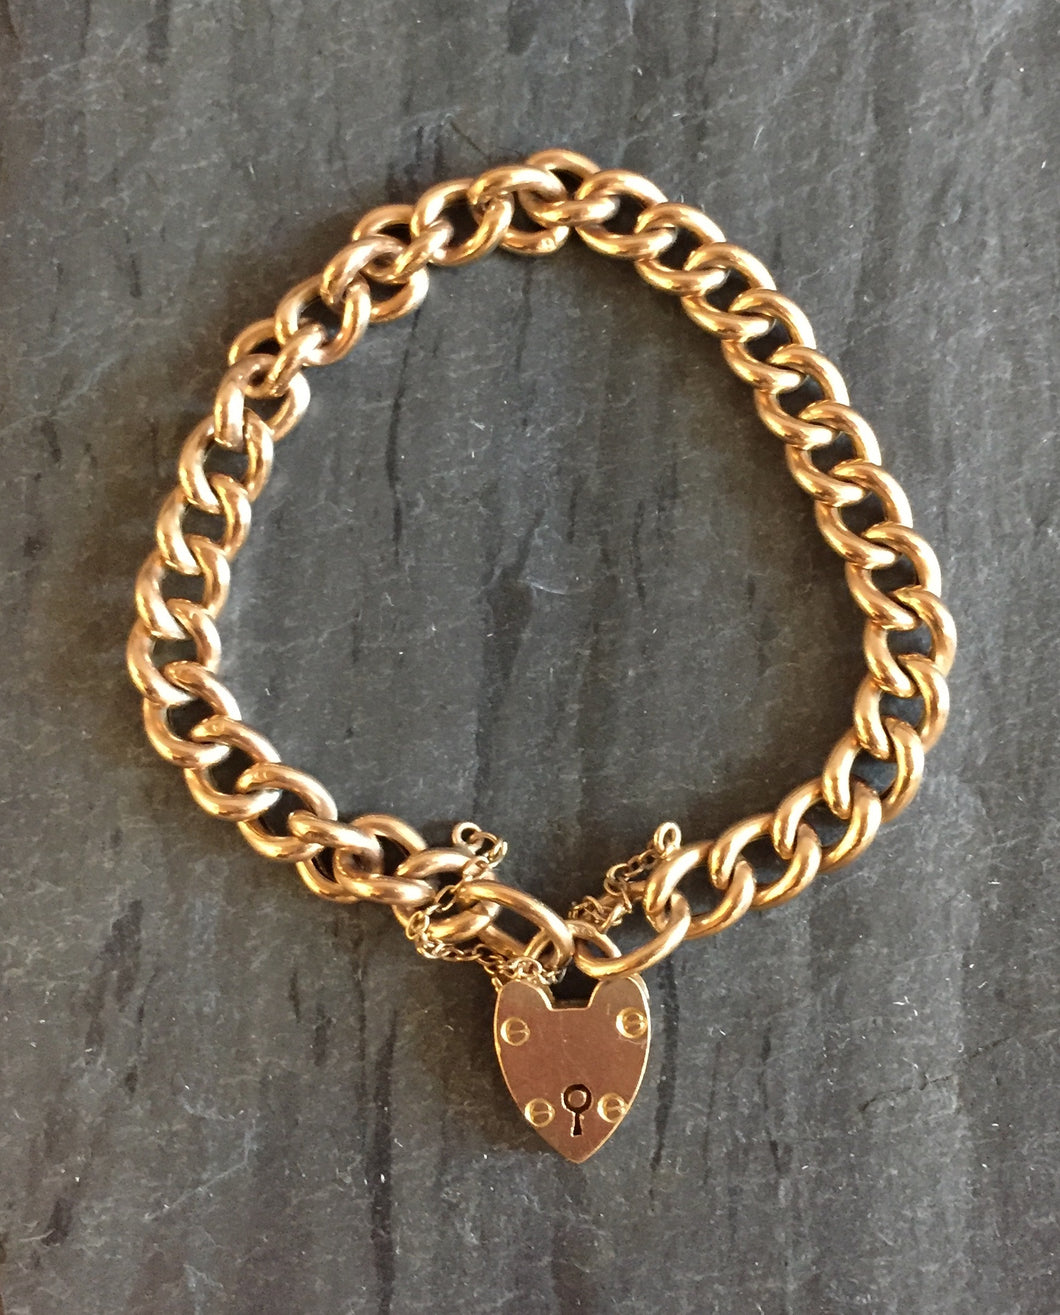 Antique Charm Link Bracelet